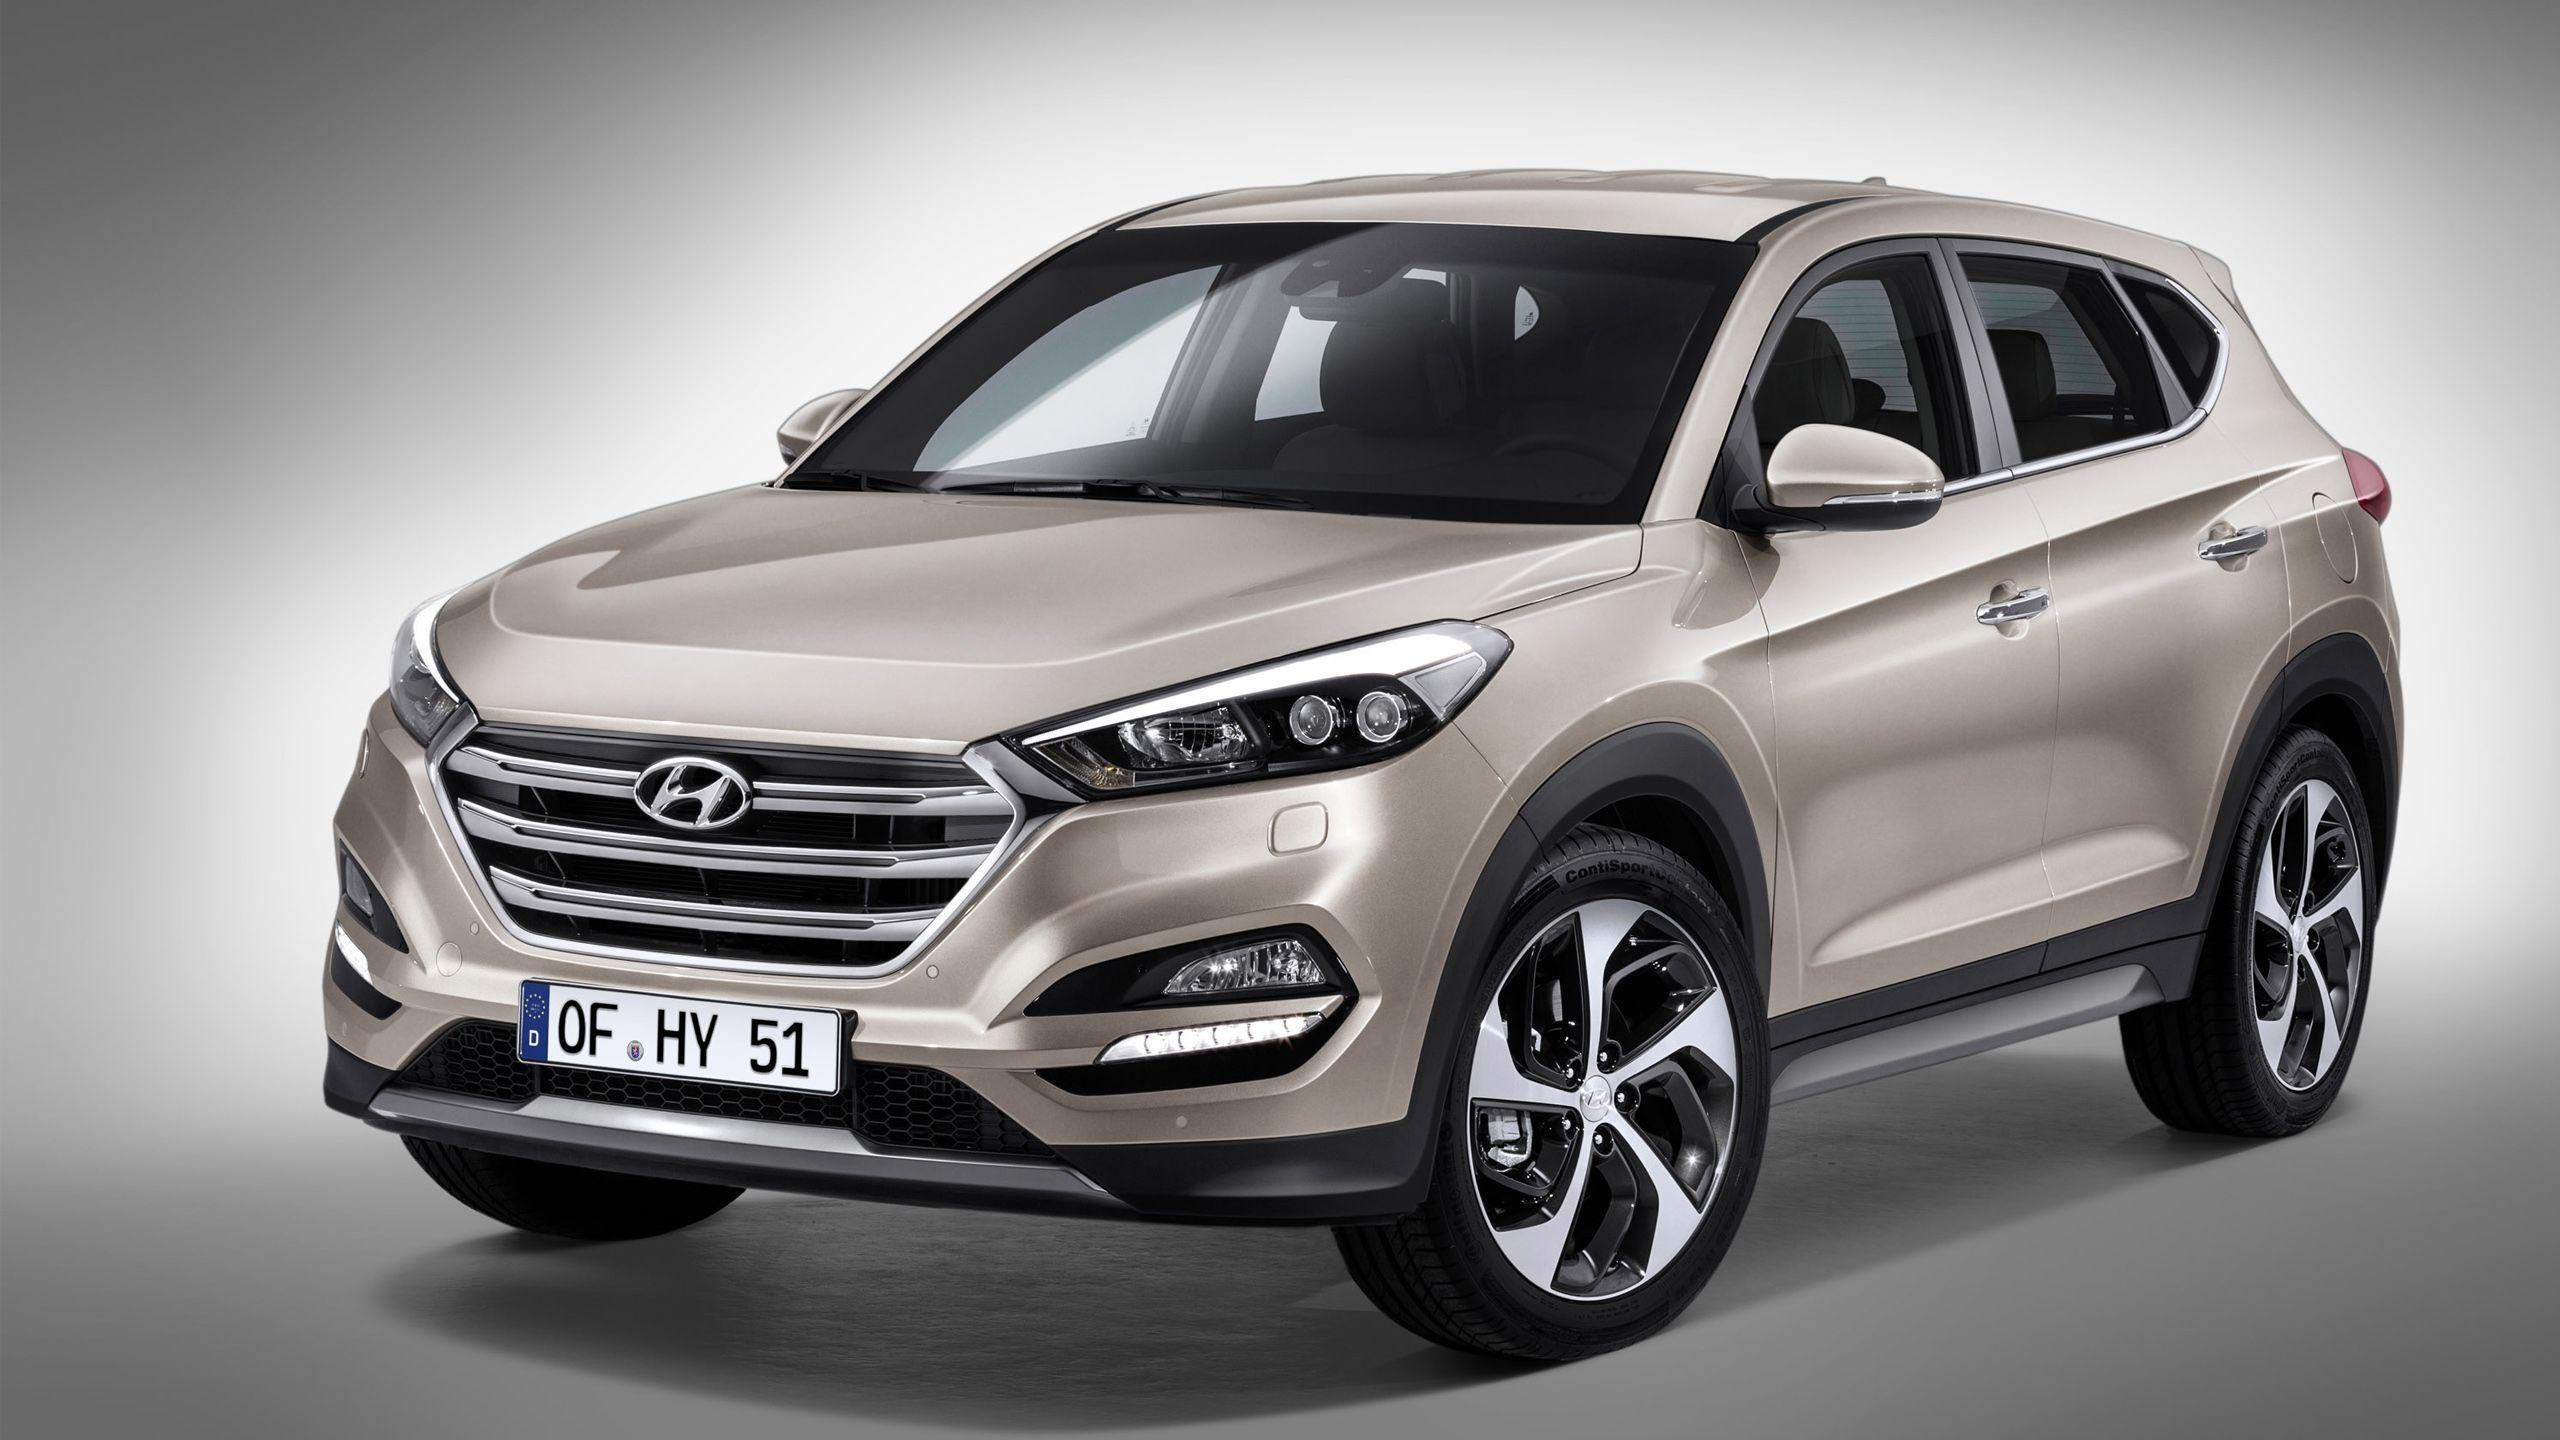 2016 Hyundai Tucson Wallpapers